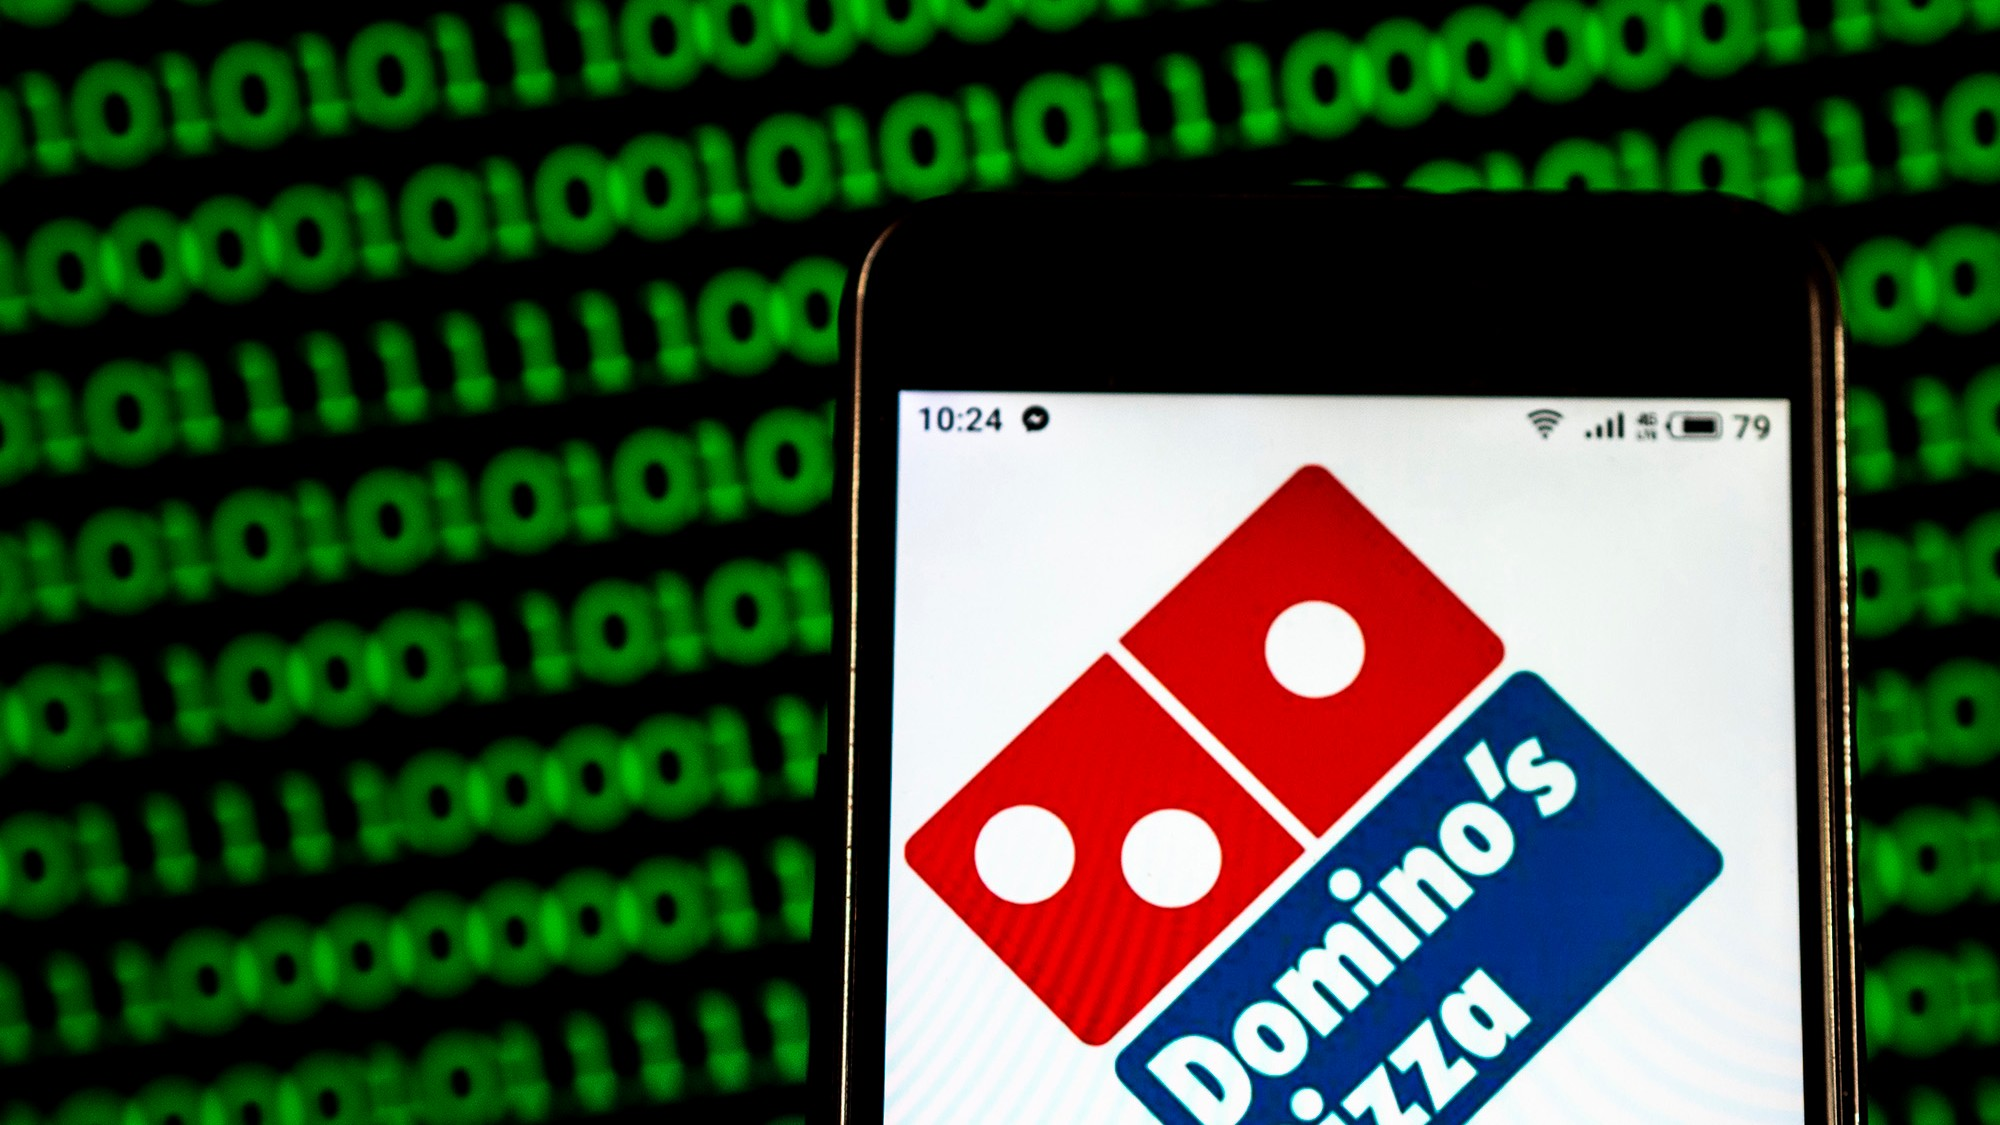 Someone Used the Domino's Pizza App to SWAT a California